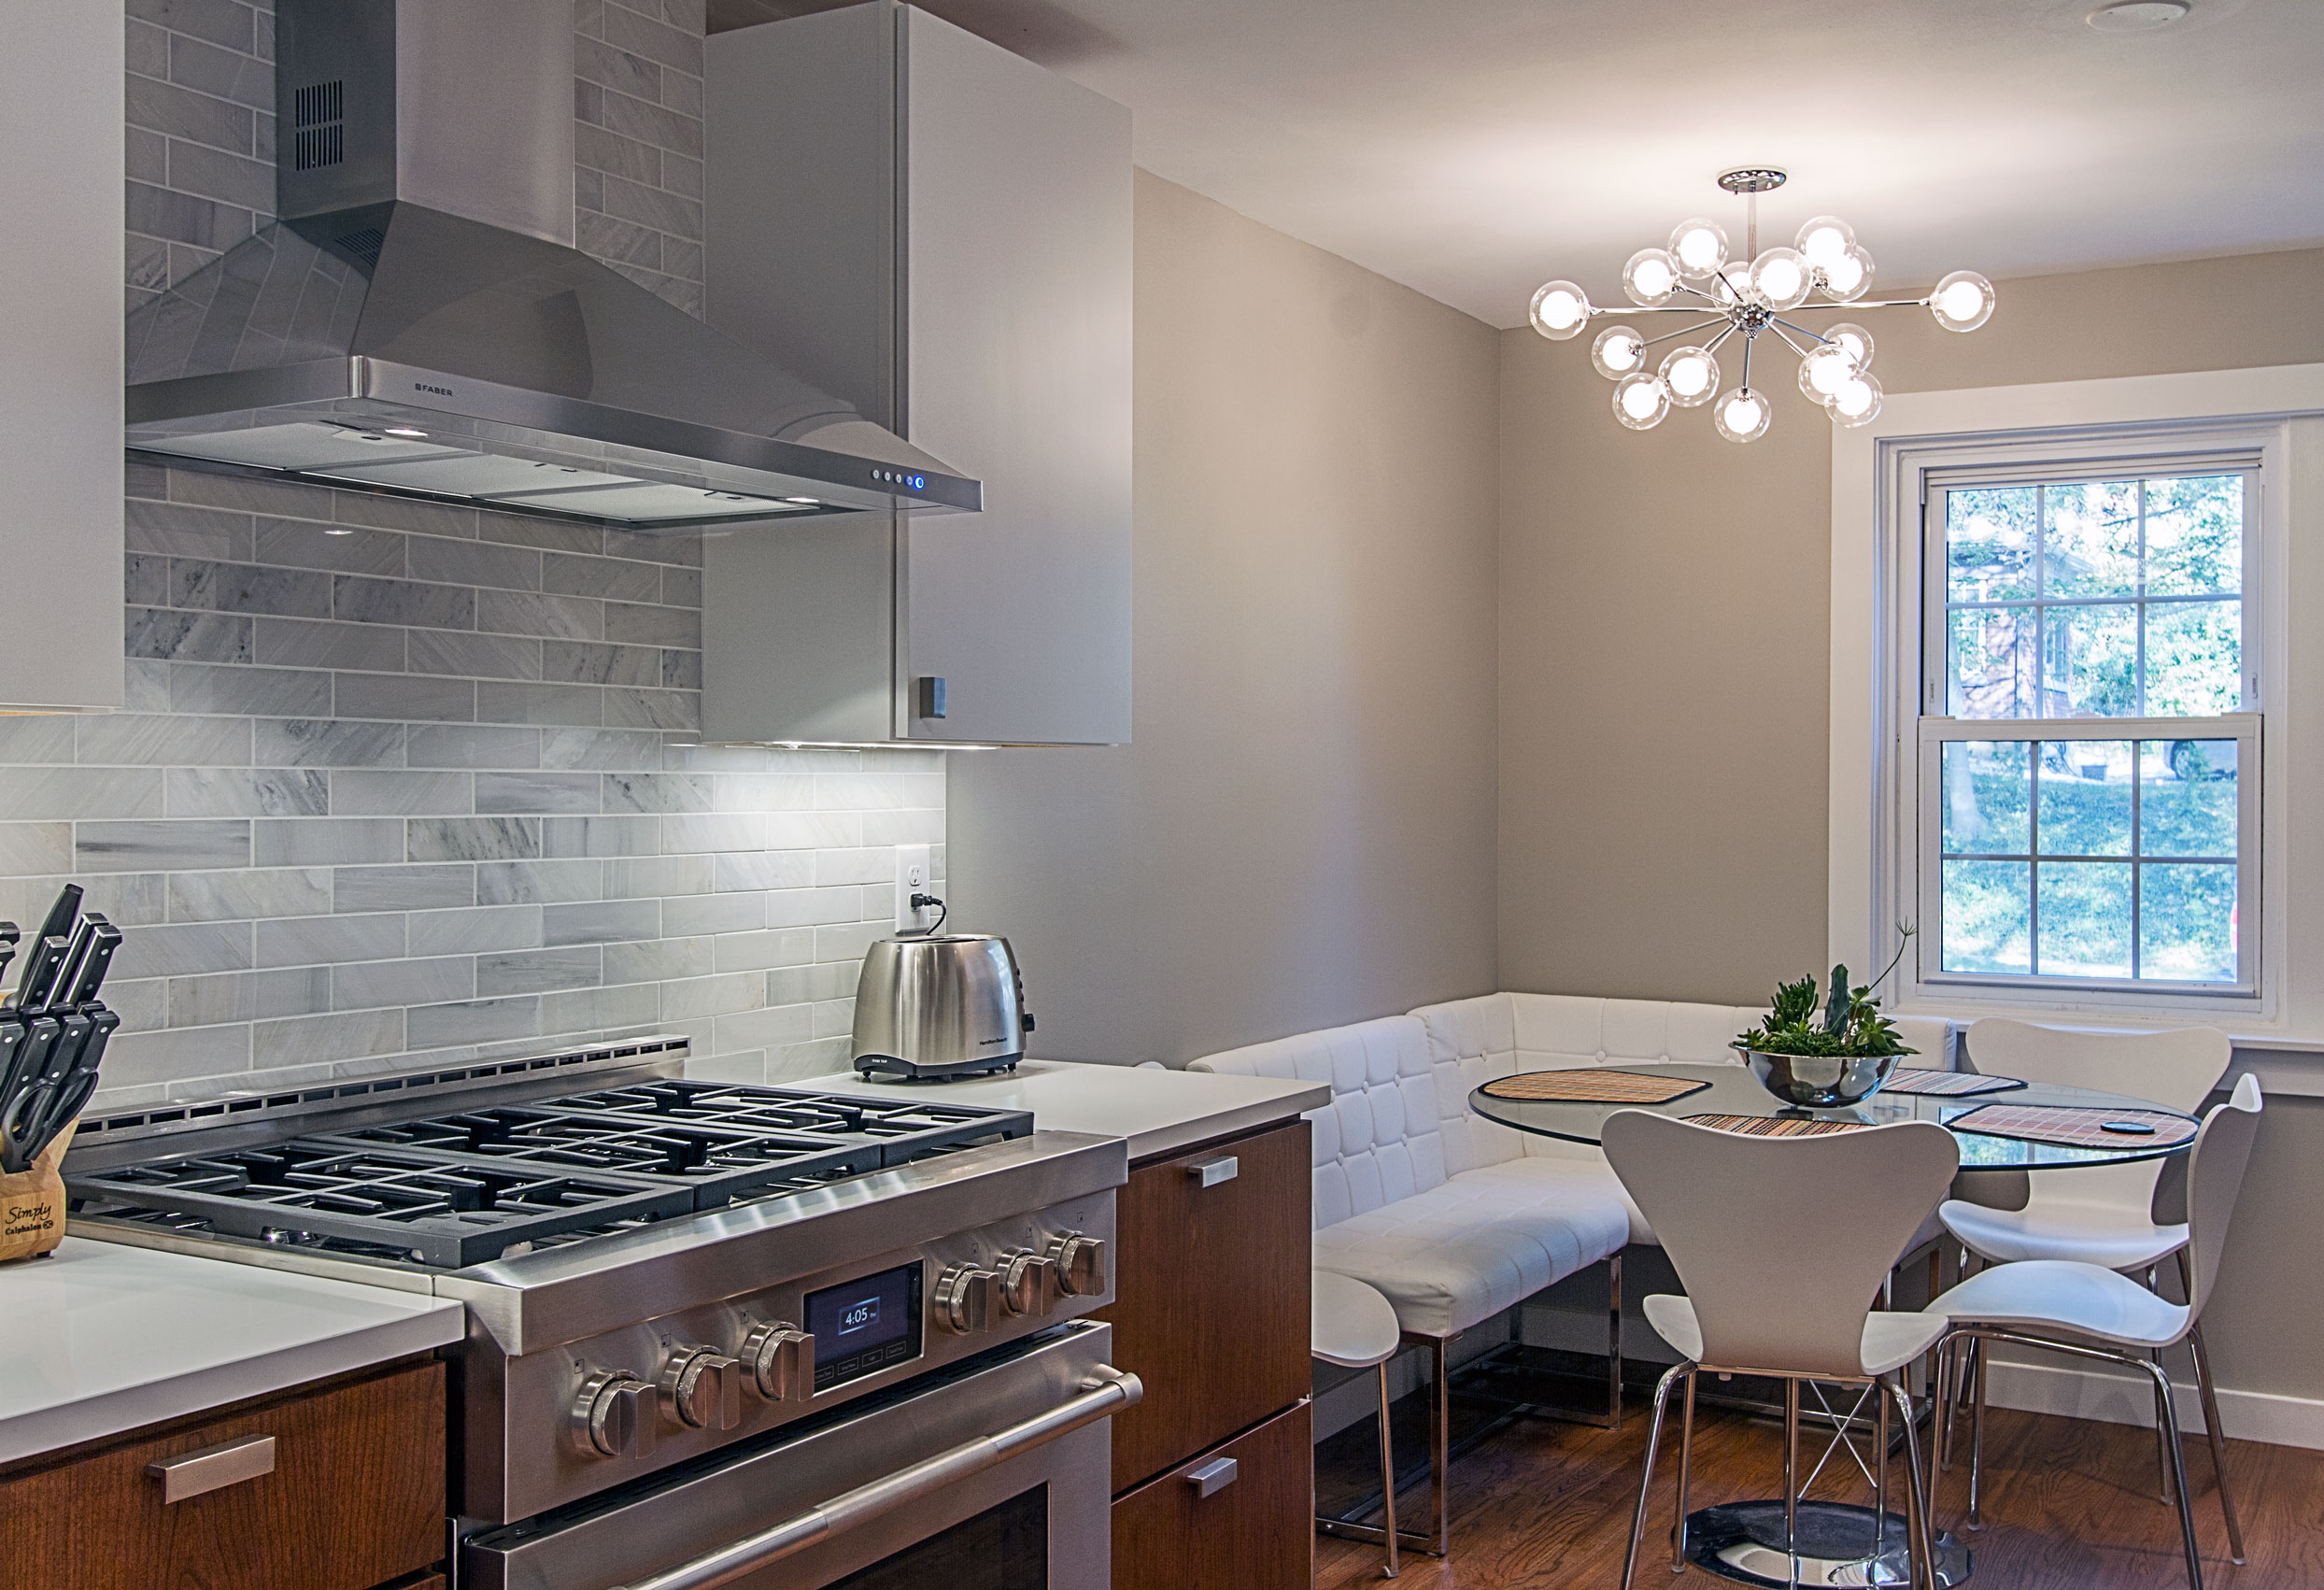 Interior design pittsburgh remodeling company for Interior design pittsburgh